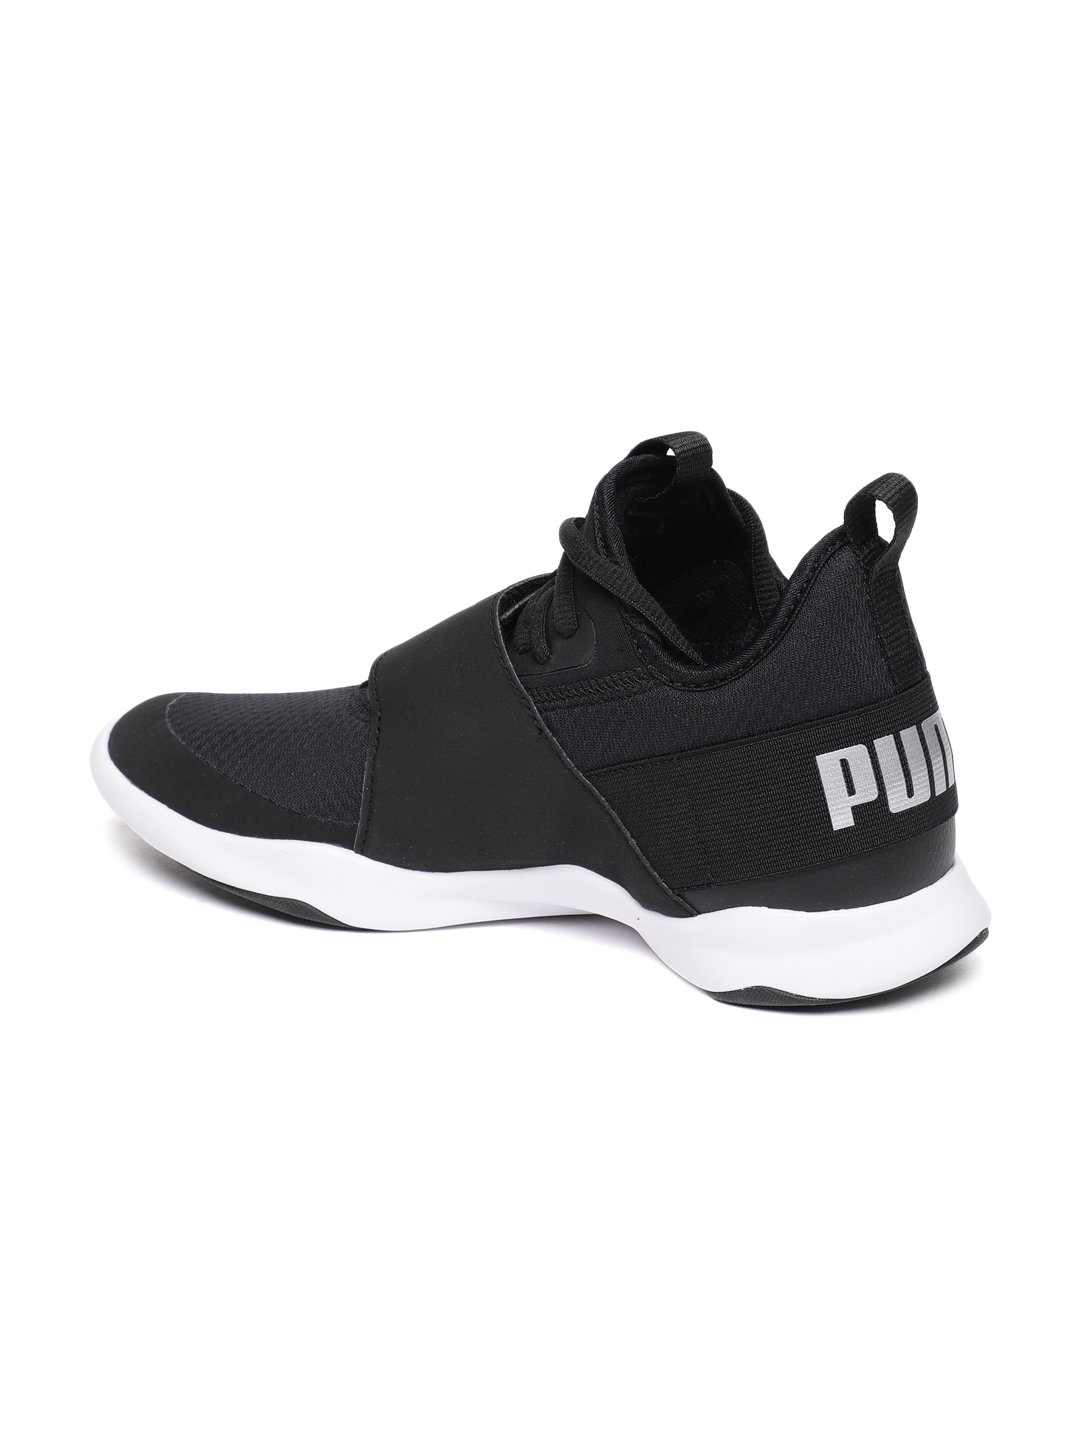 Buy Puma Kids Black Puma Dare Trainer Sneakers - Casual Shoes for ... 2f4571328